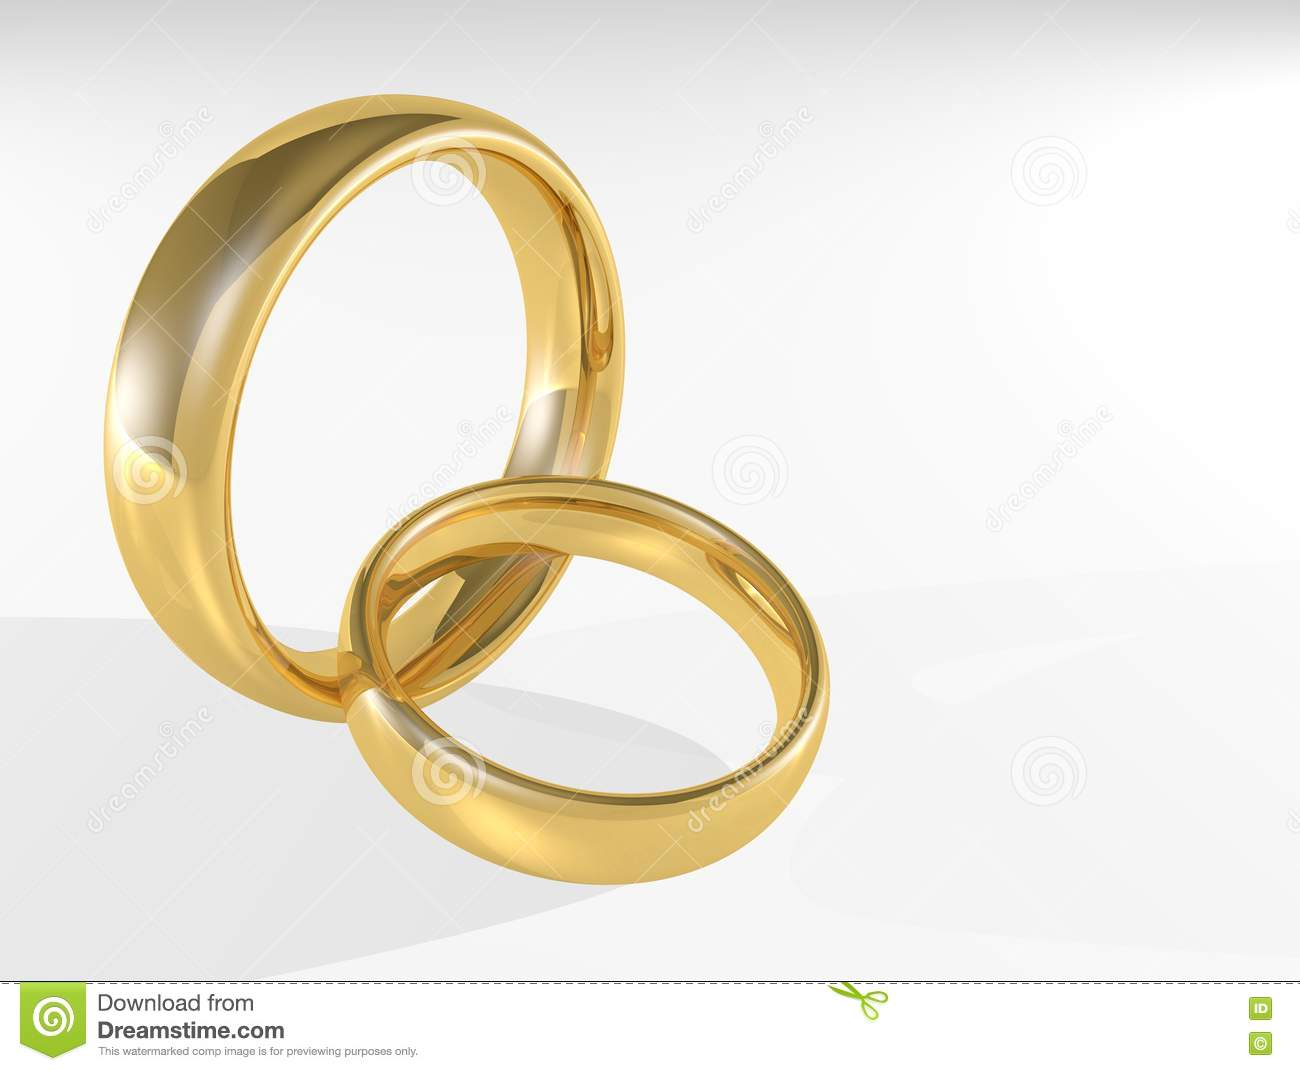 Gold Shiny Wedding Rings Stock Image  Image 17415531. Person Rings. Invisible Wedding Rings. Promis Wedding Rings. 2.75 Carat Engagement Rings. Weddbook Wedding Rings. Oversized Rings. Hoop Engagement Rings. Midi Rings